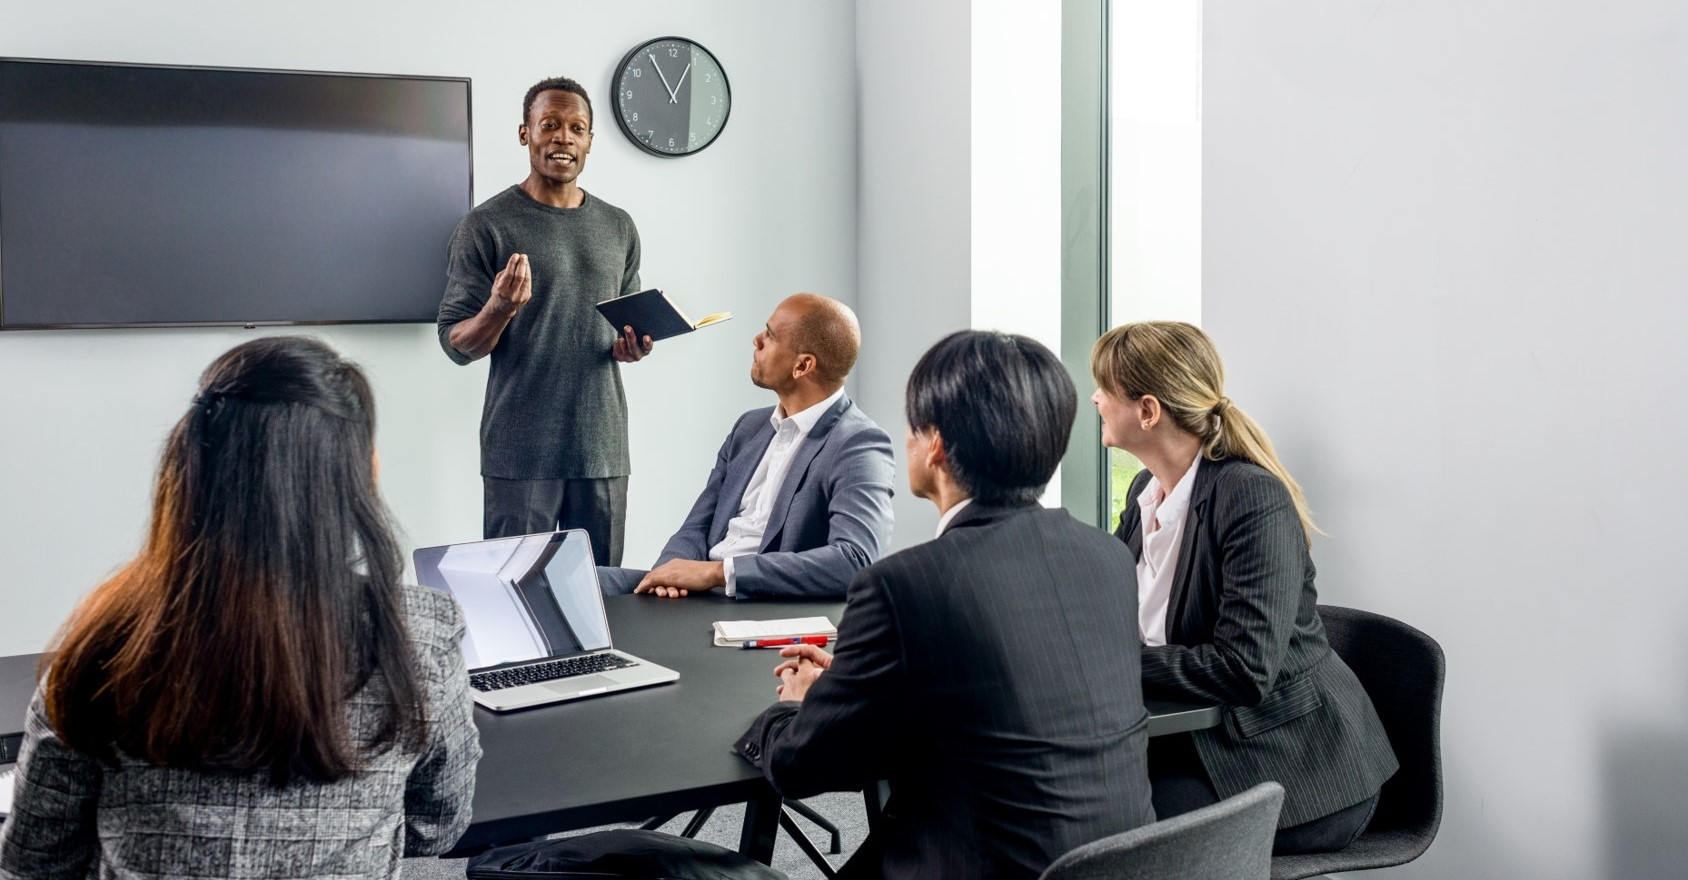 IELTS for work is an English Test that helps people to work worldwide. This picture shows people form different cultures in a meeting room discussing a topic.